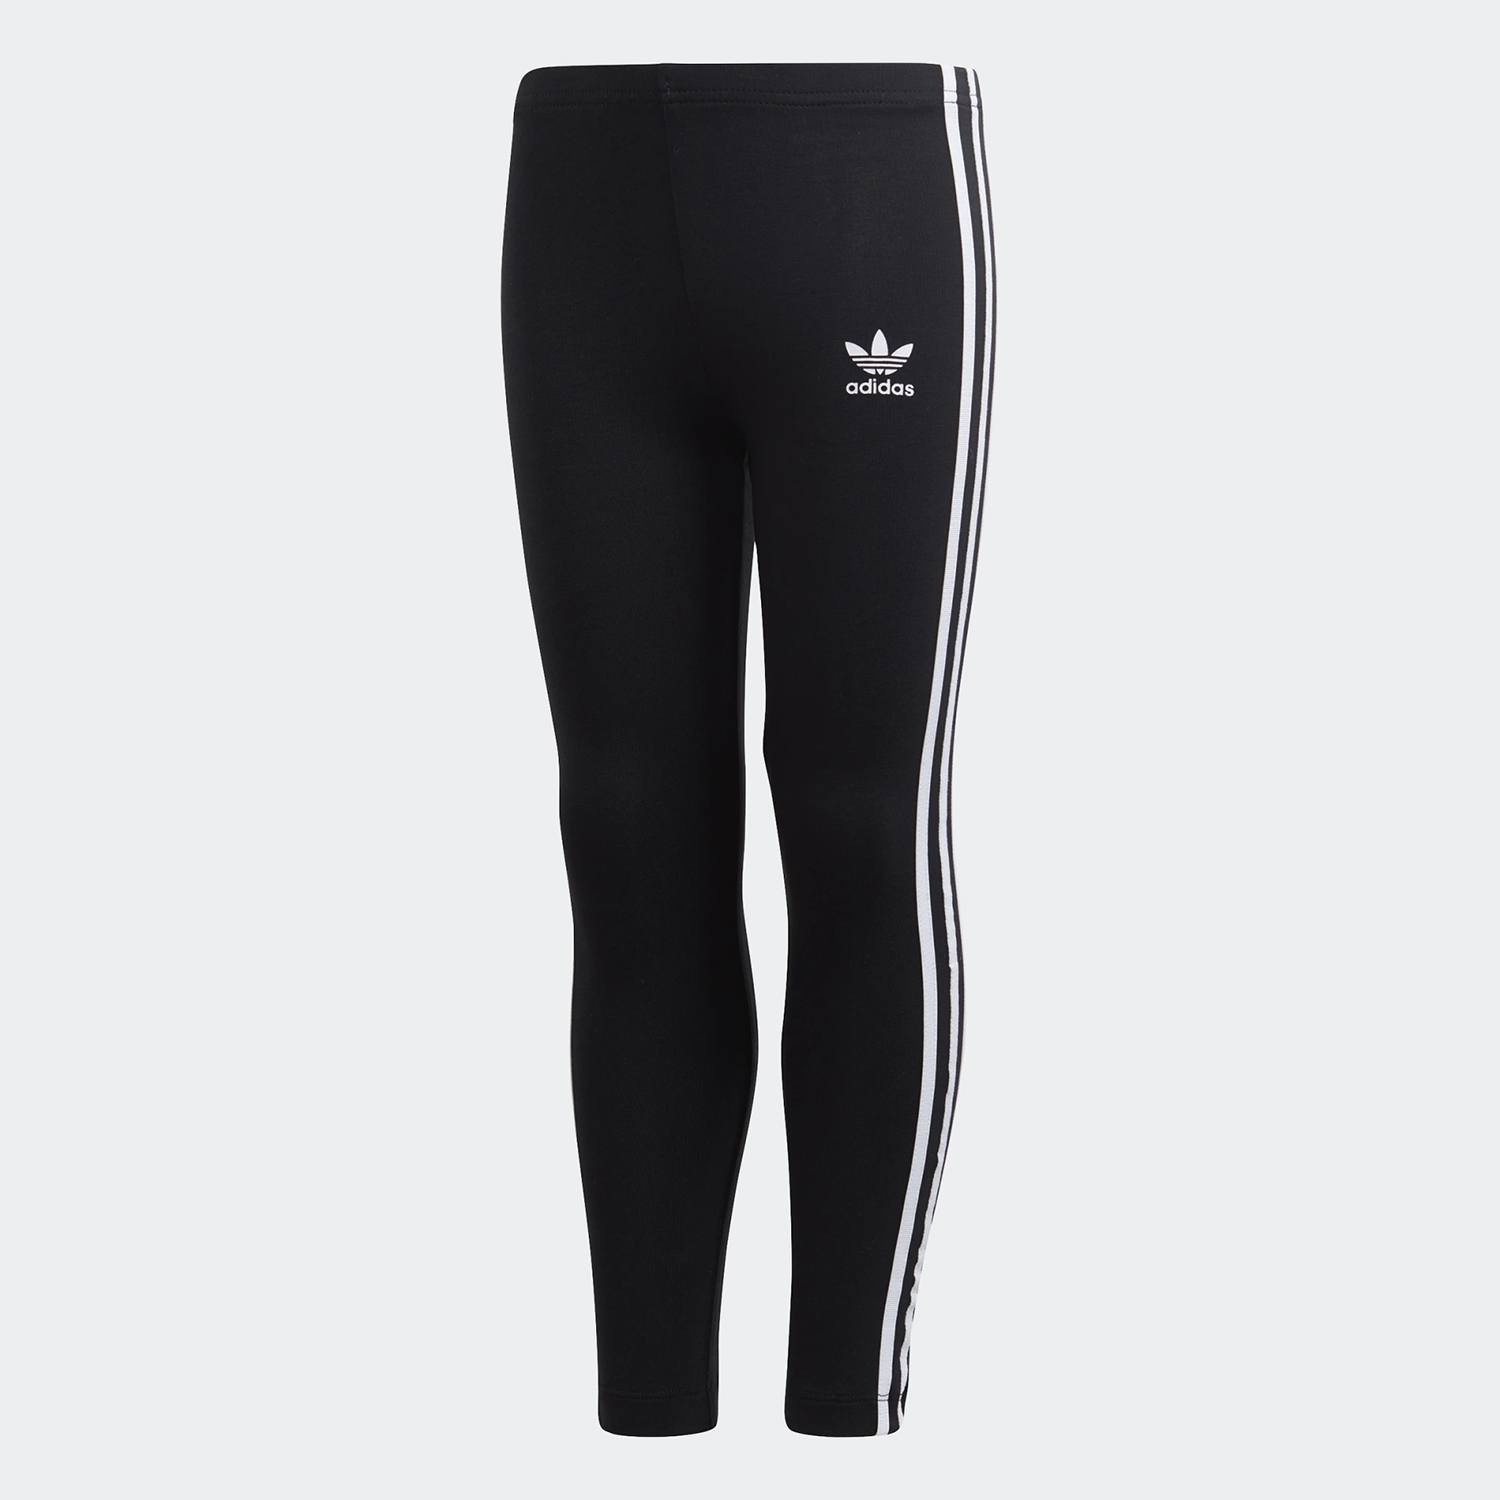 adidas Originals 3-Stripes Girl's Leggings - Παιδικό Κολάν (9000023751_1480)